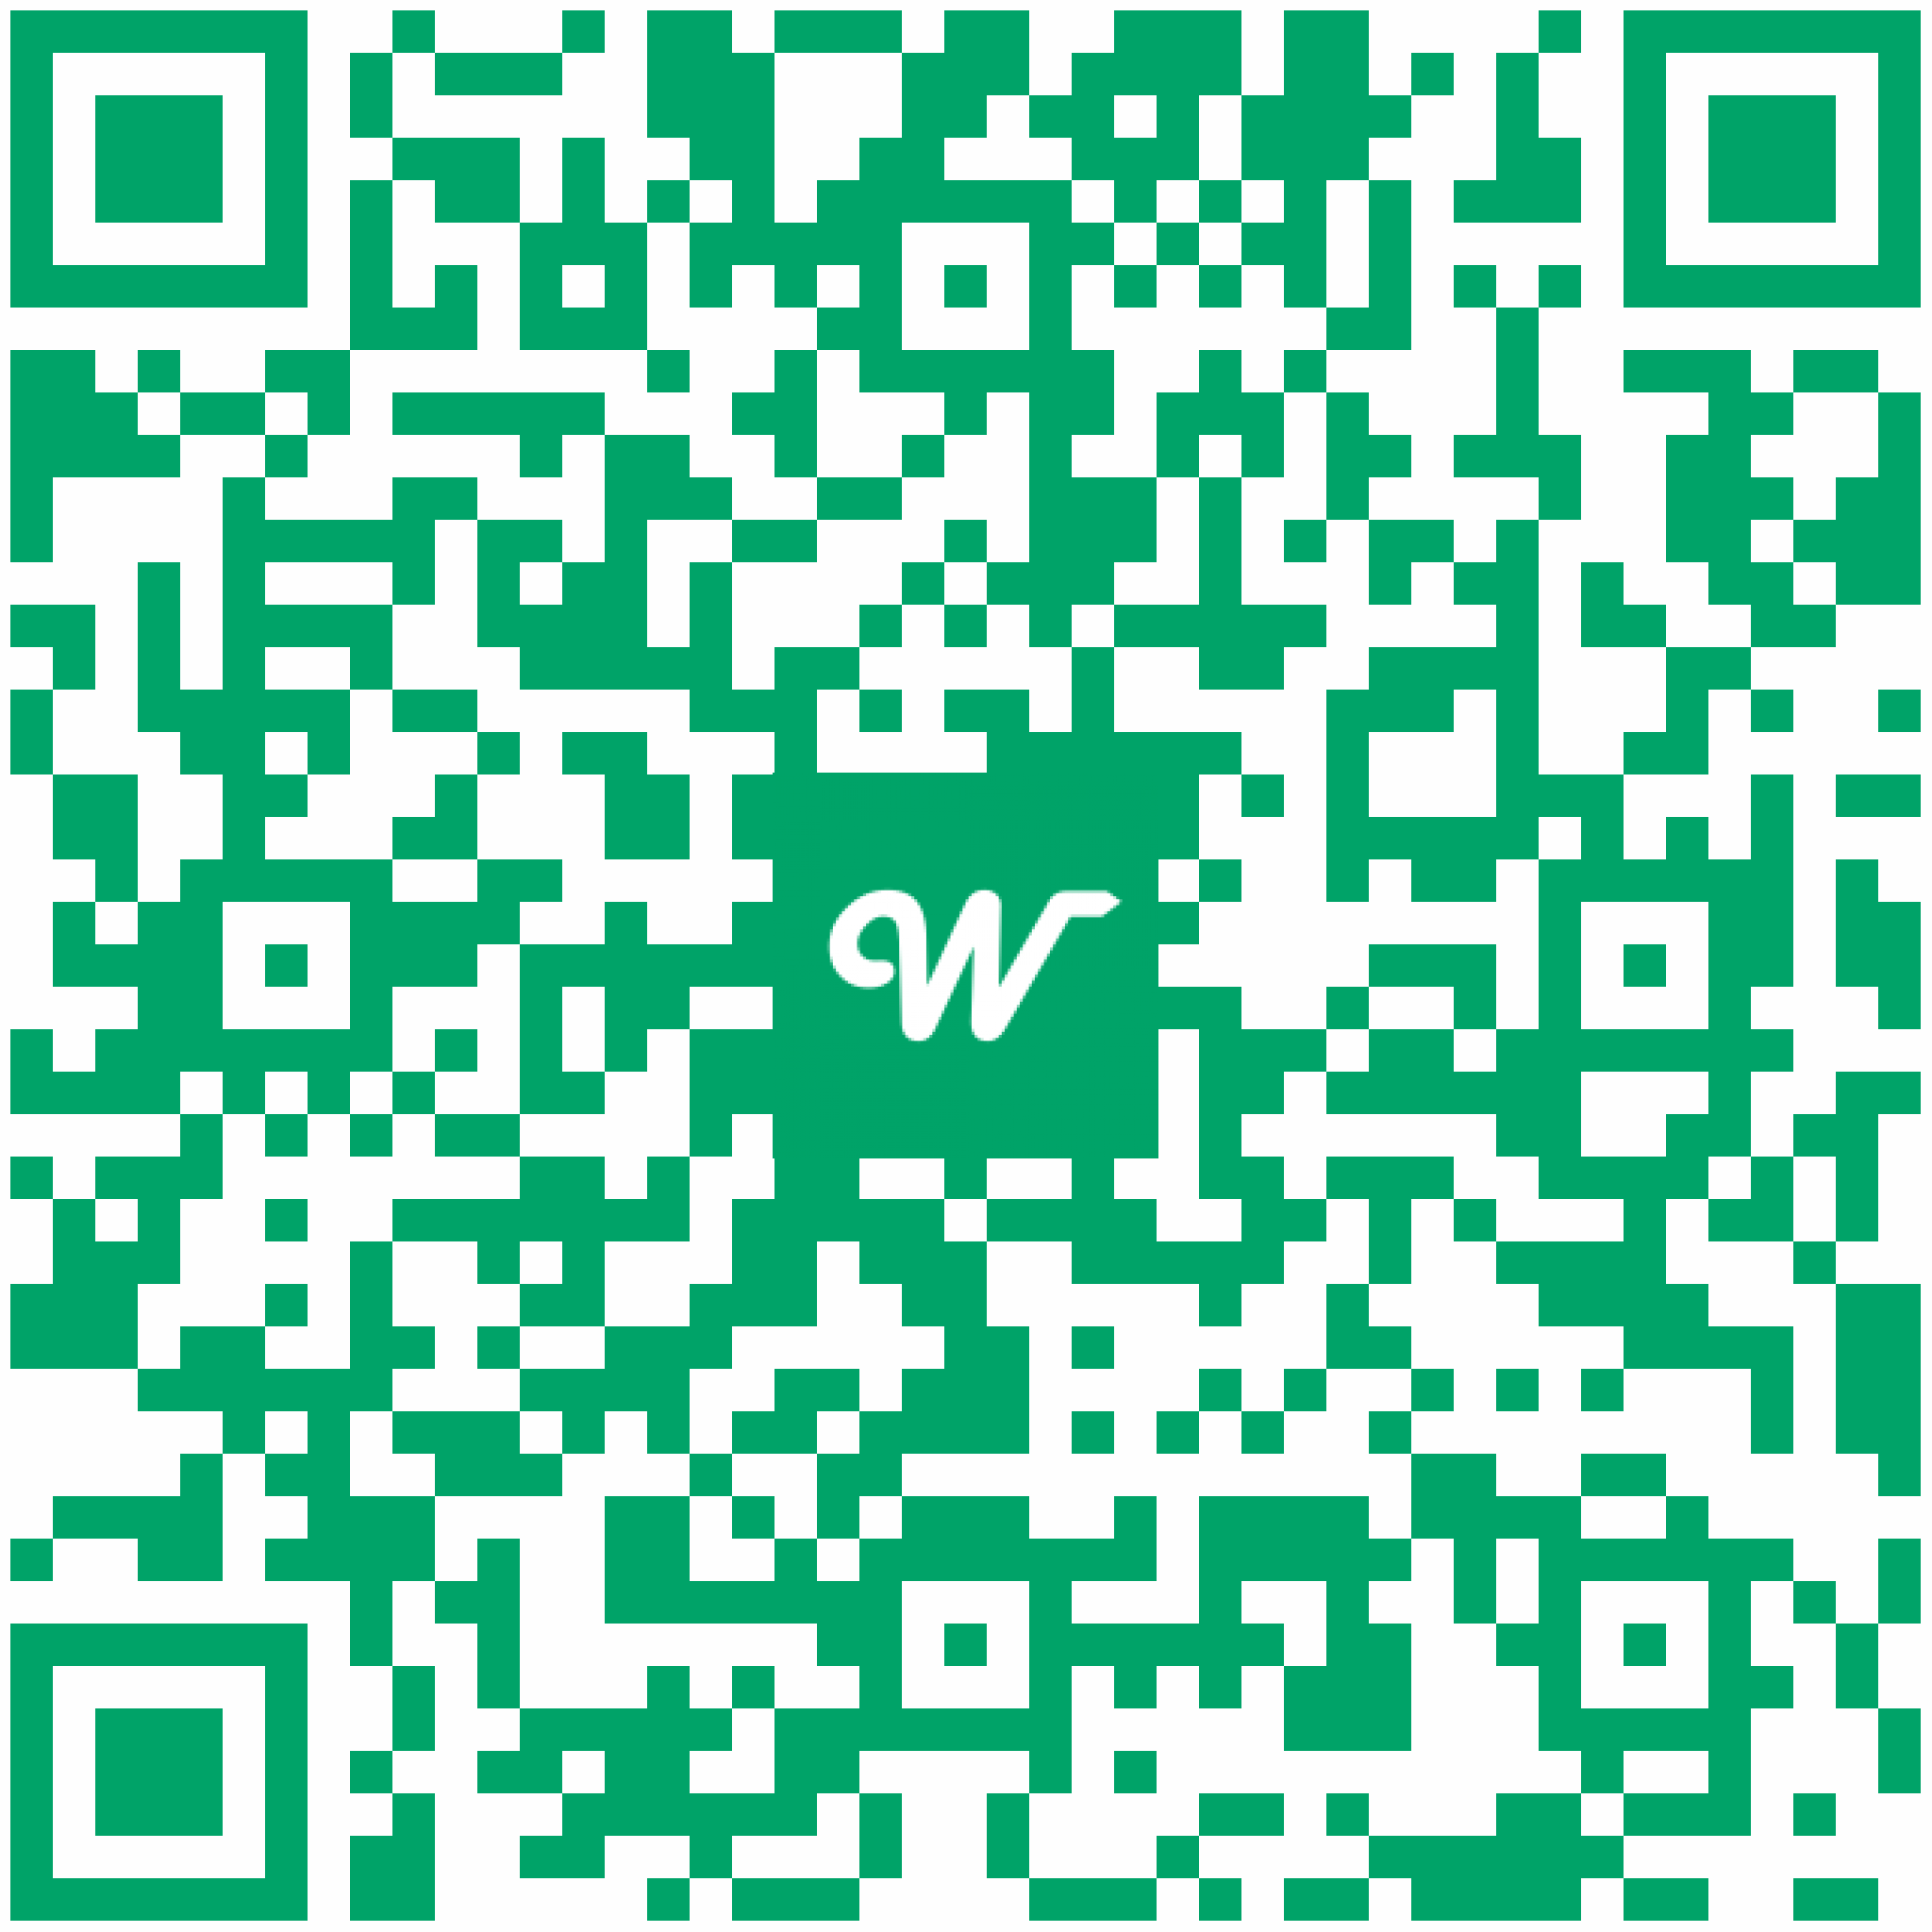 Printable QR code for Gundam Toy Shop - Toy, Paint, Warhammer Game & Hobby Model Kits